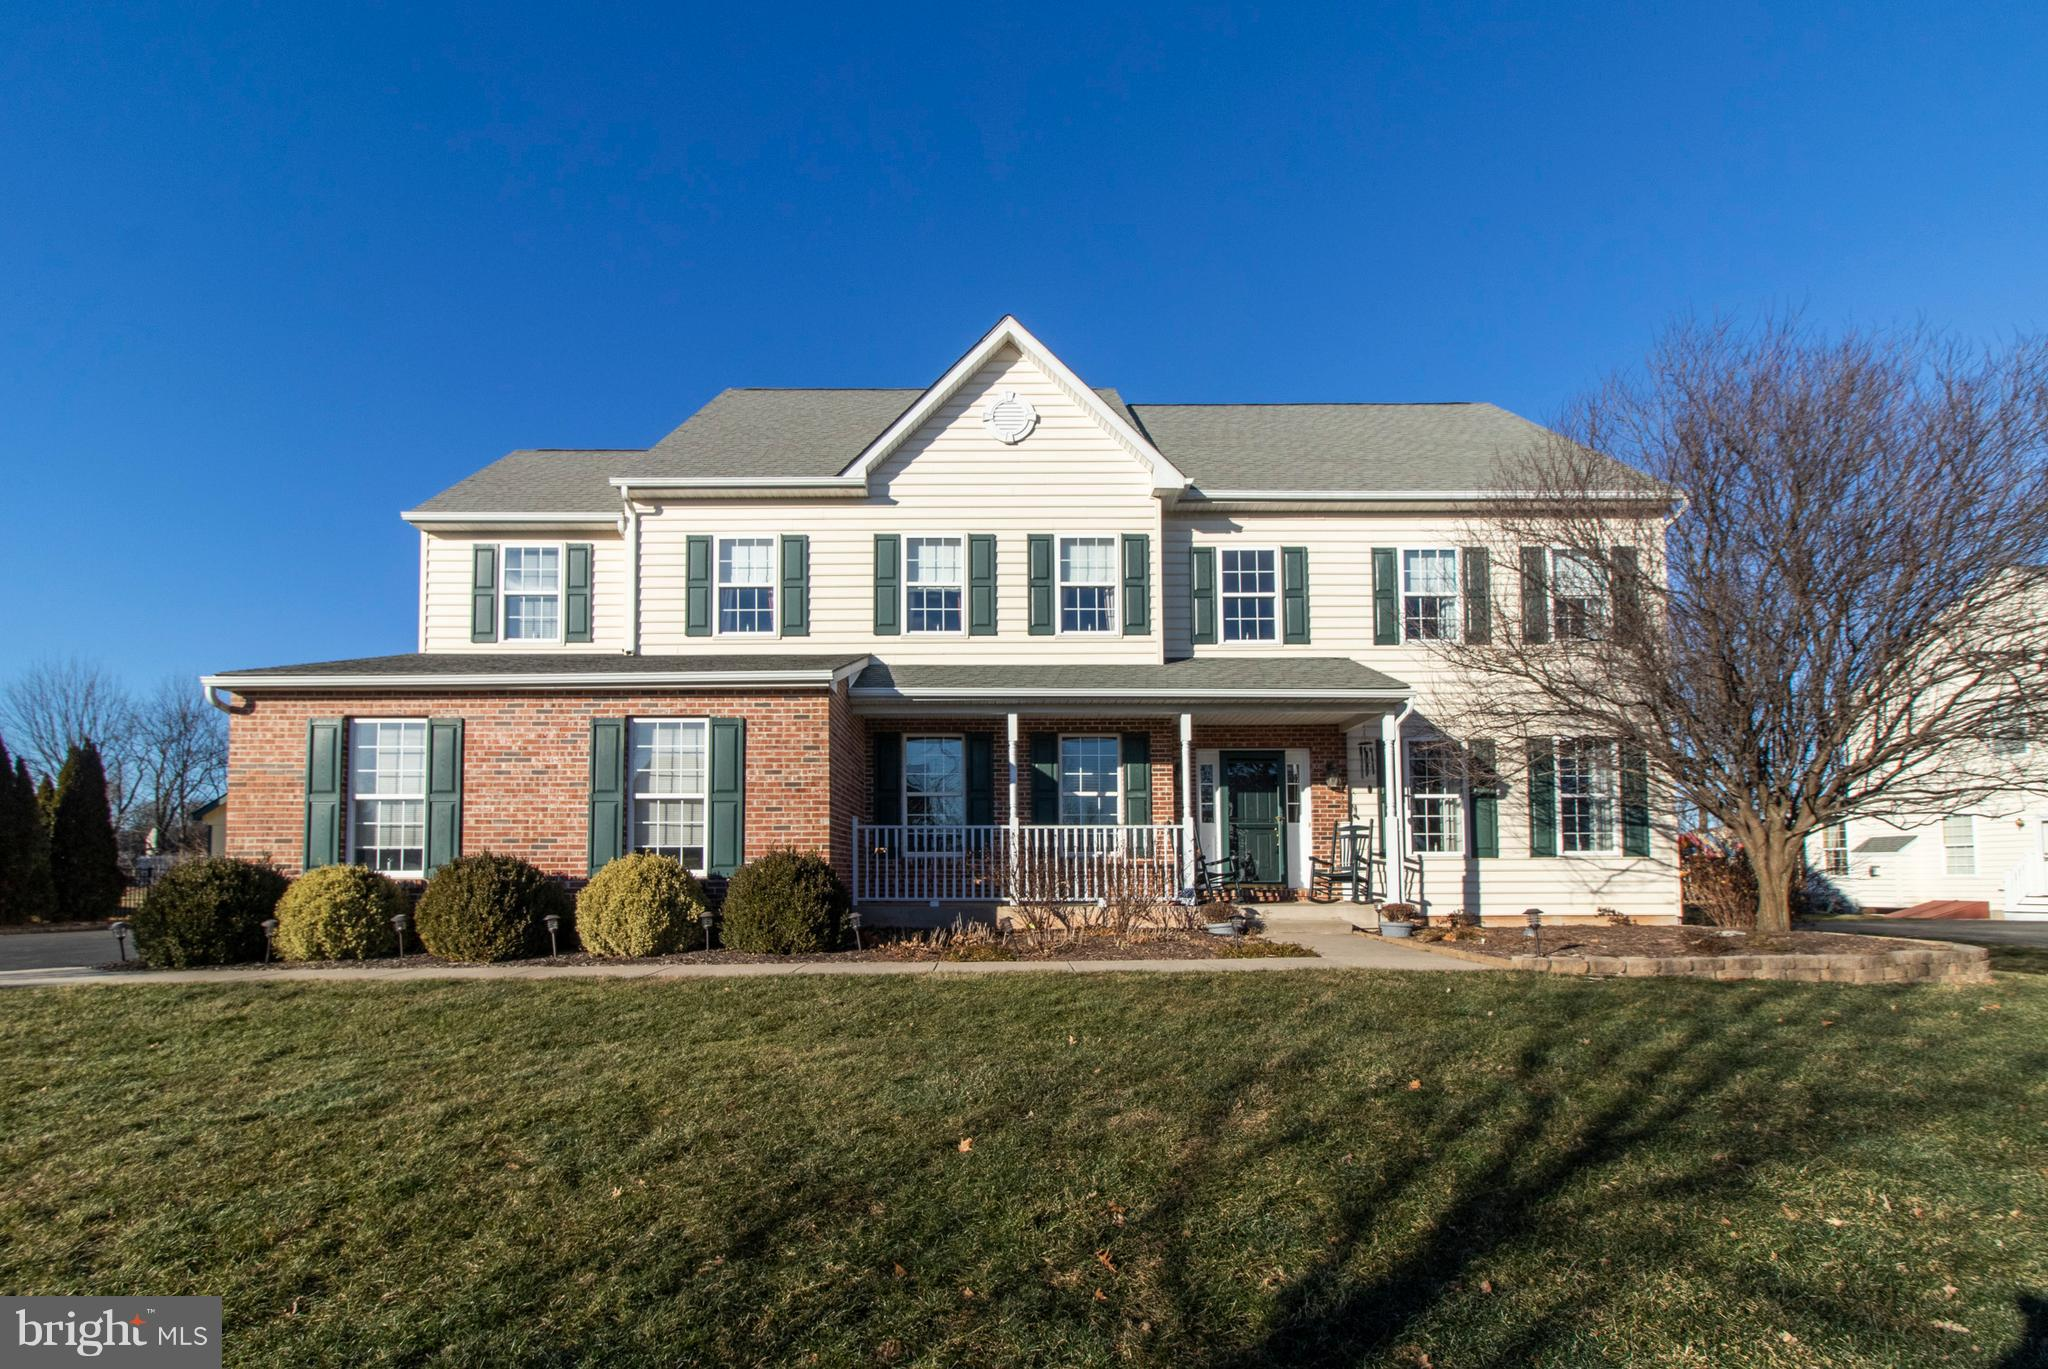 35 SOFIA COURT, ROYERSFORD, PA 19468